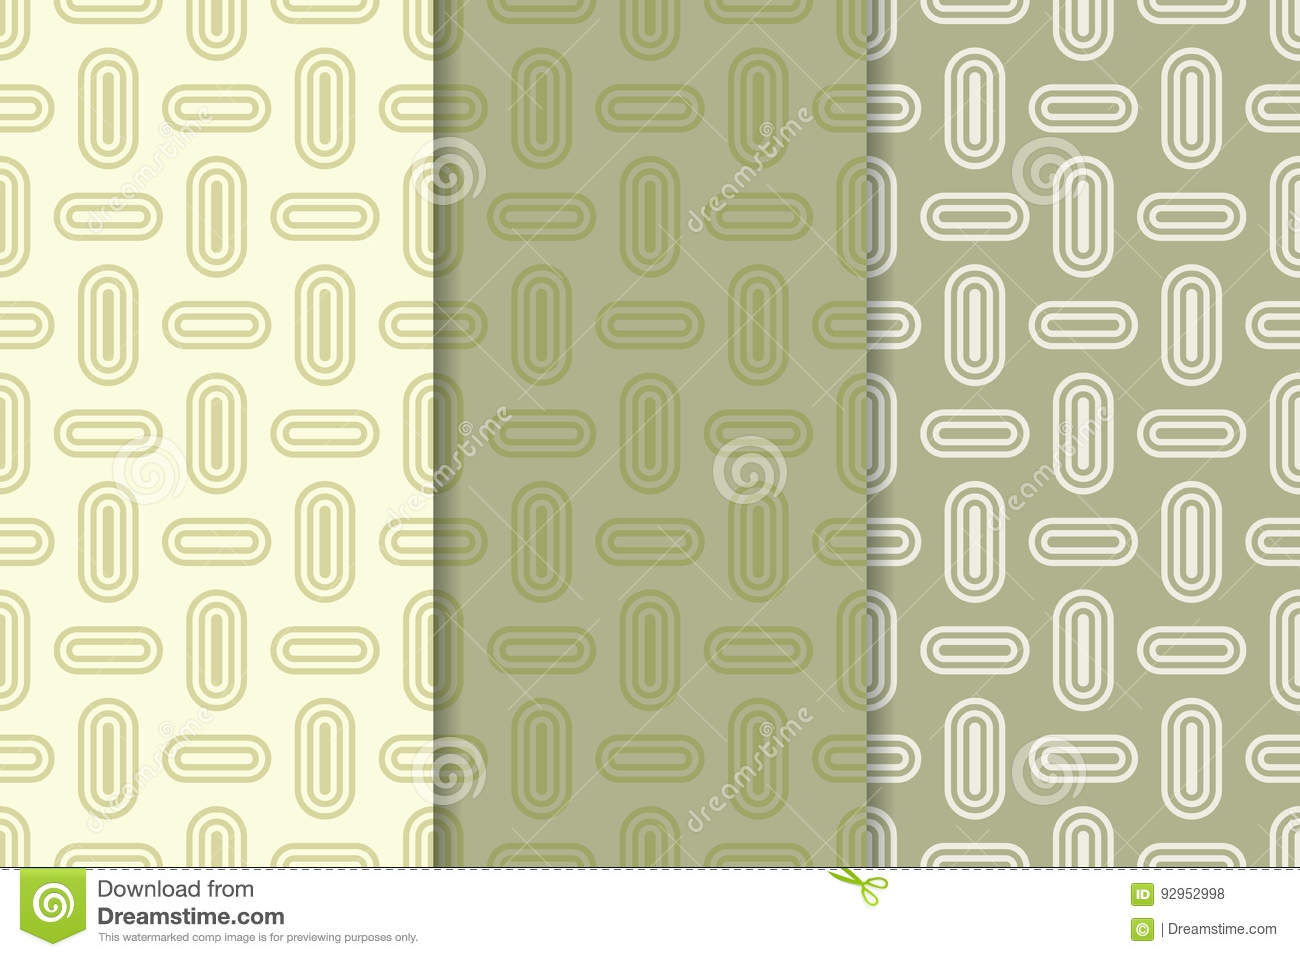 Geometric Seamless Background Olive Green Wallpaper With Oval Elements